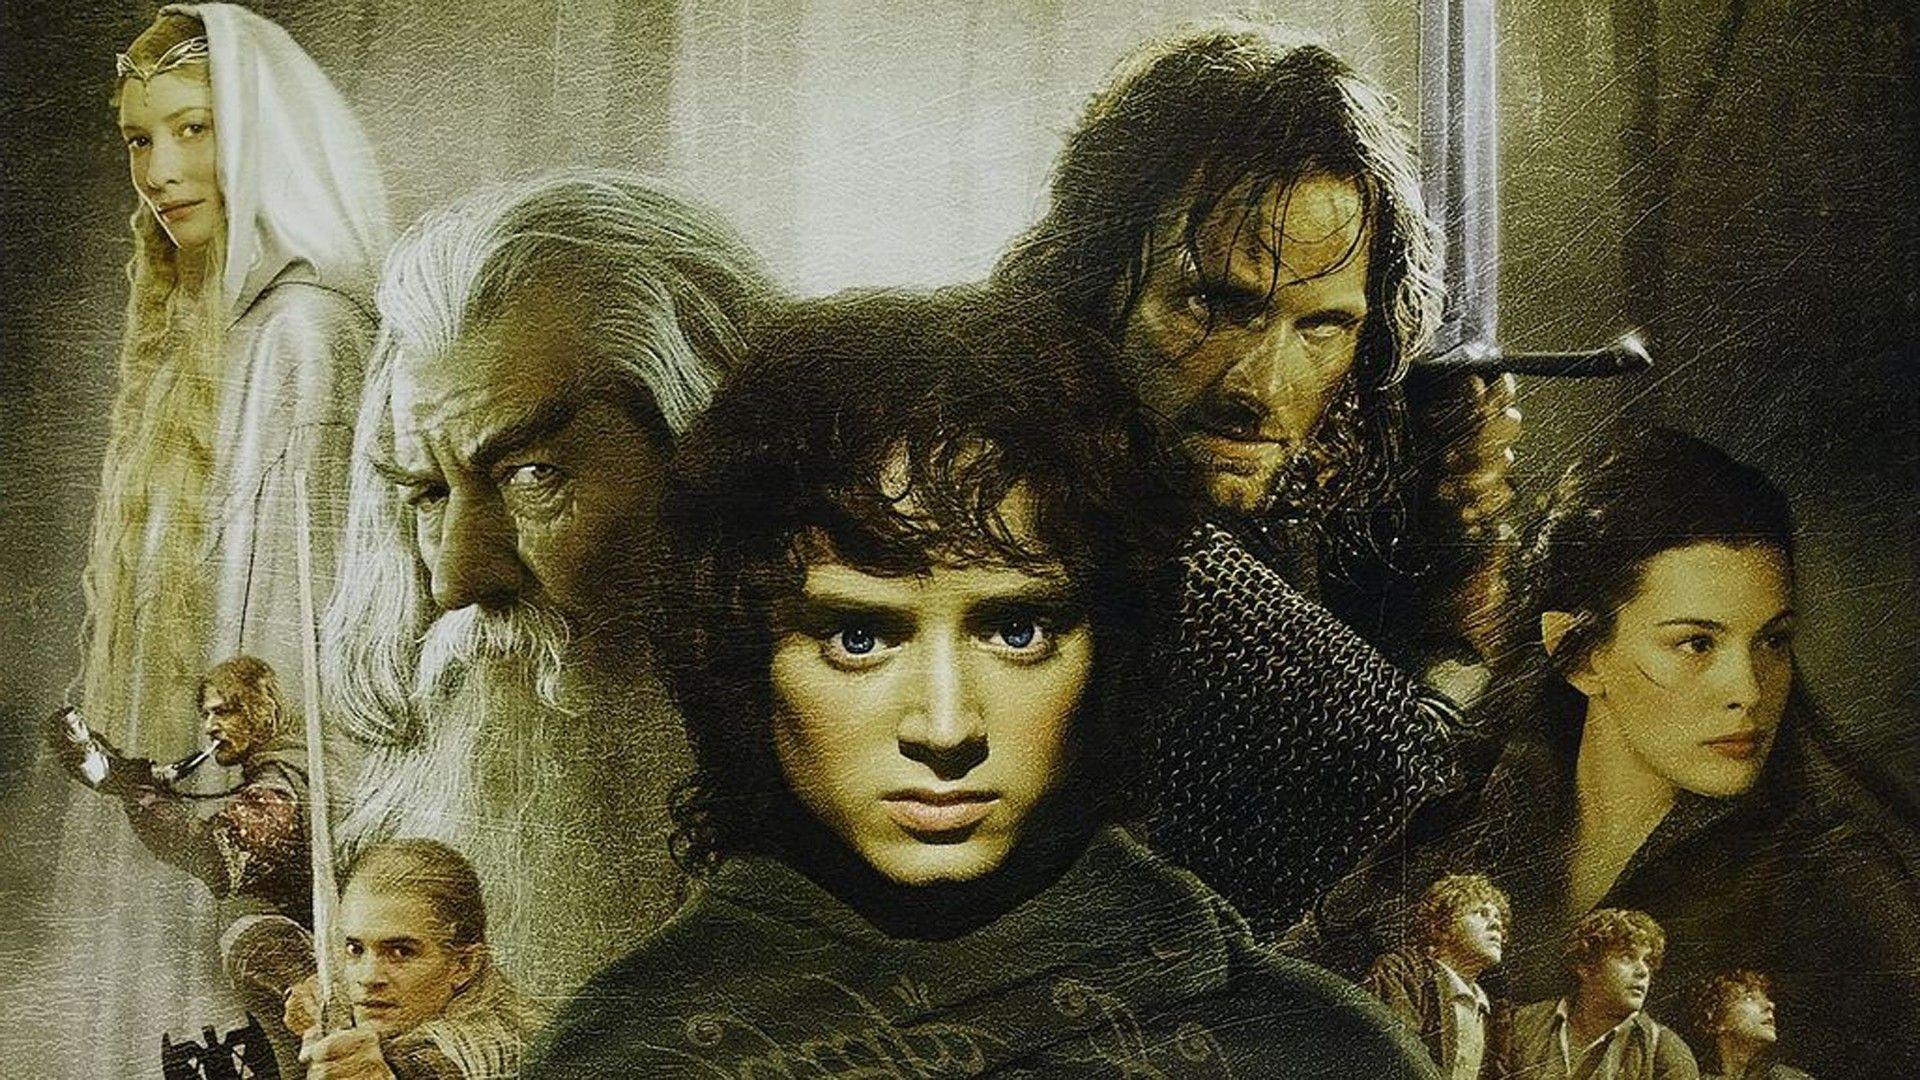 The Lord of the Rings: The Fellowship of the Ring Wallpapers 17